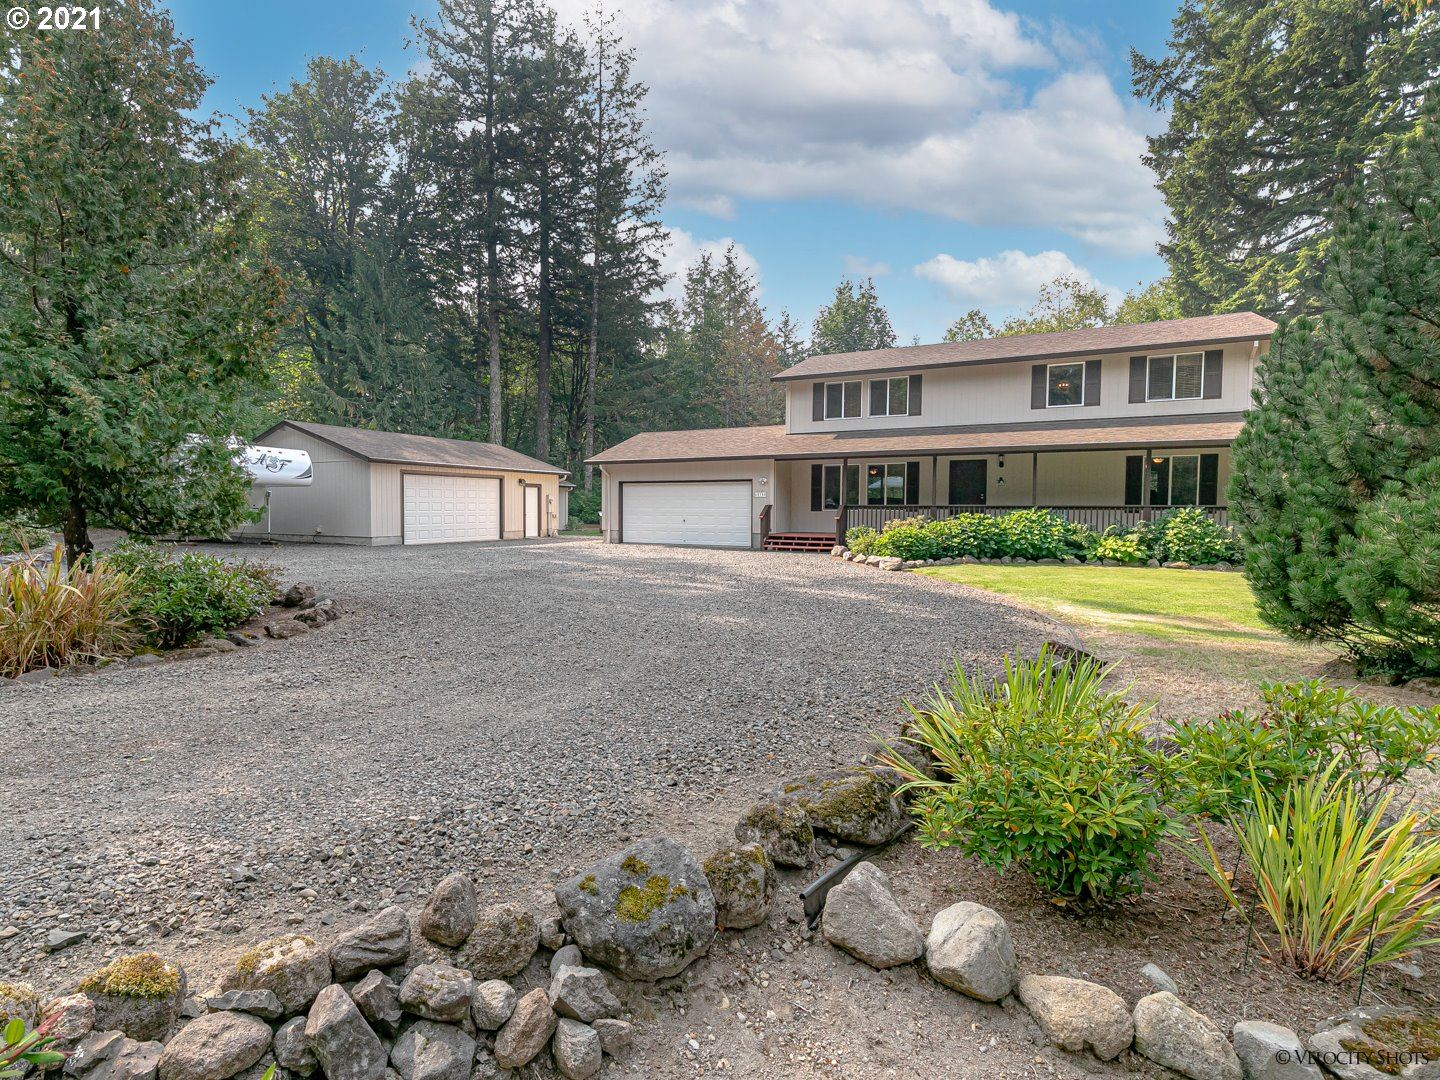 65750 E CHIPPAWA LN, Rhododendron, OR 97049 - MLS#: 21643995